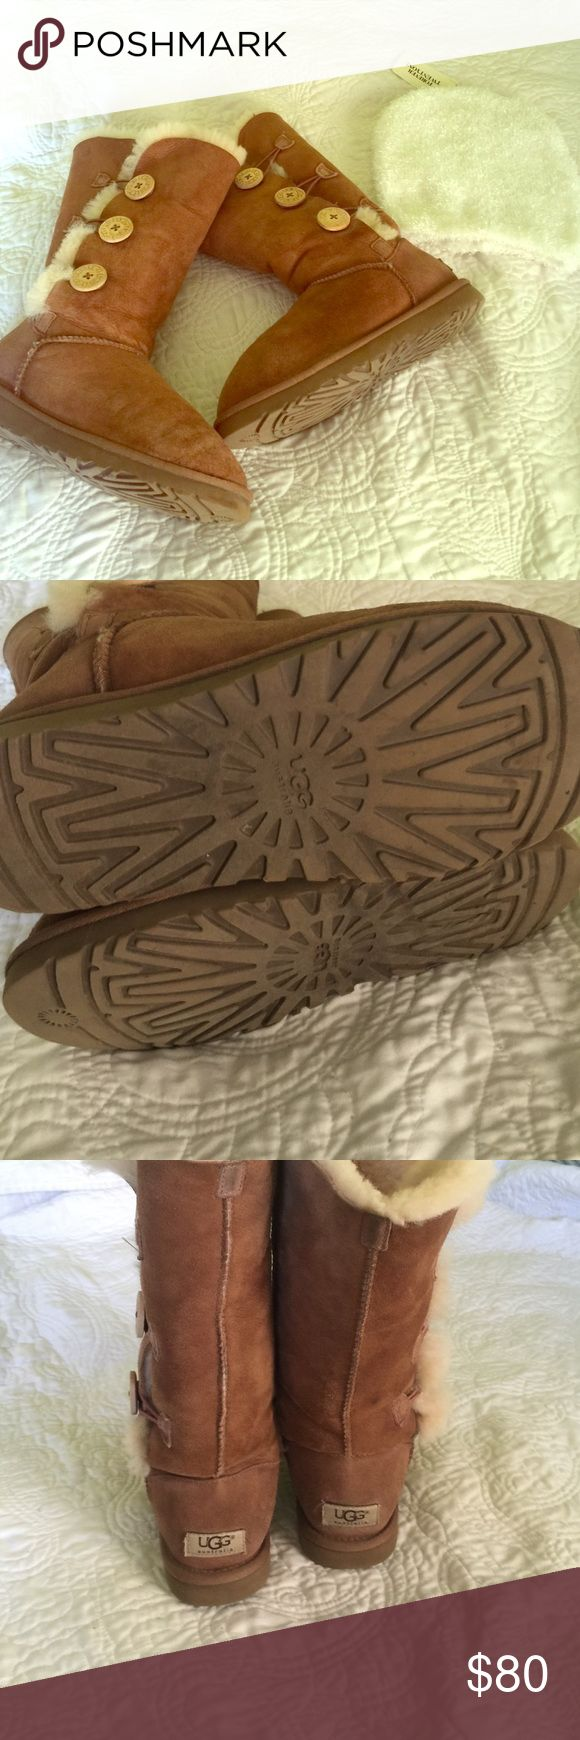 Chestnut Uggs Really good condition besides the small water line that isn't noticeable when on at all & a tiny little stain on the right foot backside but I made sure extra light hit the line so you can till its there can easily be cleaned with ugg cleaning kit I do it all the time with other uggs but I just got new ones & don't need these anymore. Selling at a good price compared to others and the condition.If you have an ugg cleaning kit please let me know I just ran out 👍🏻 PERFECT FOR…